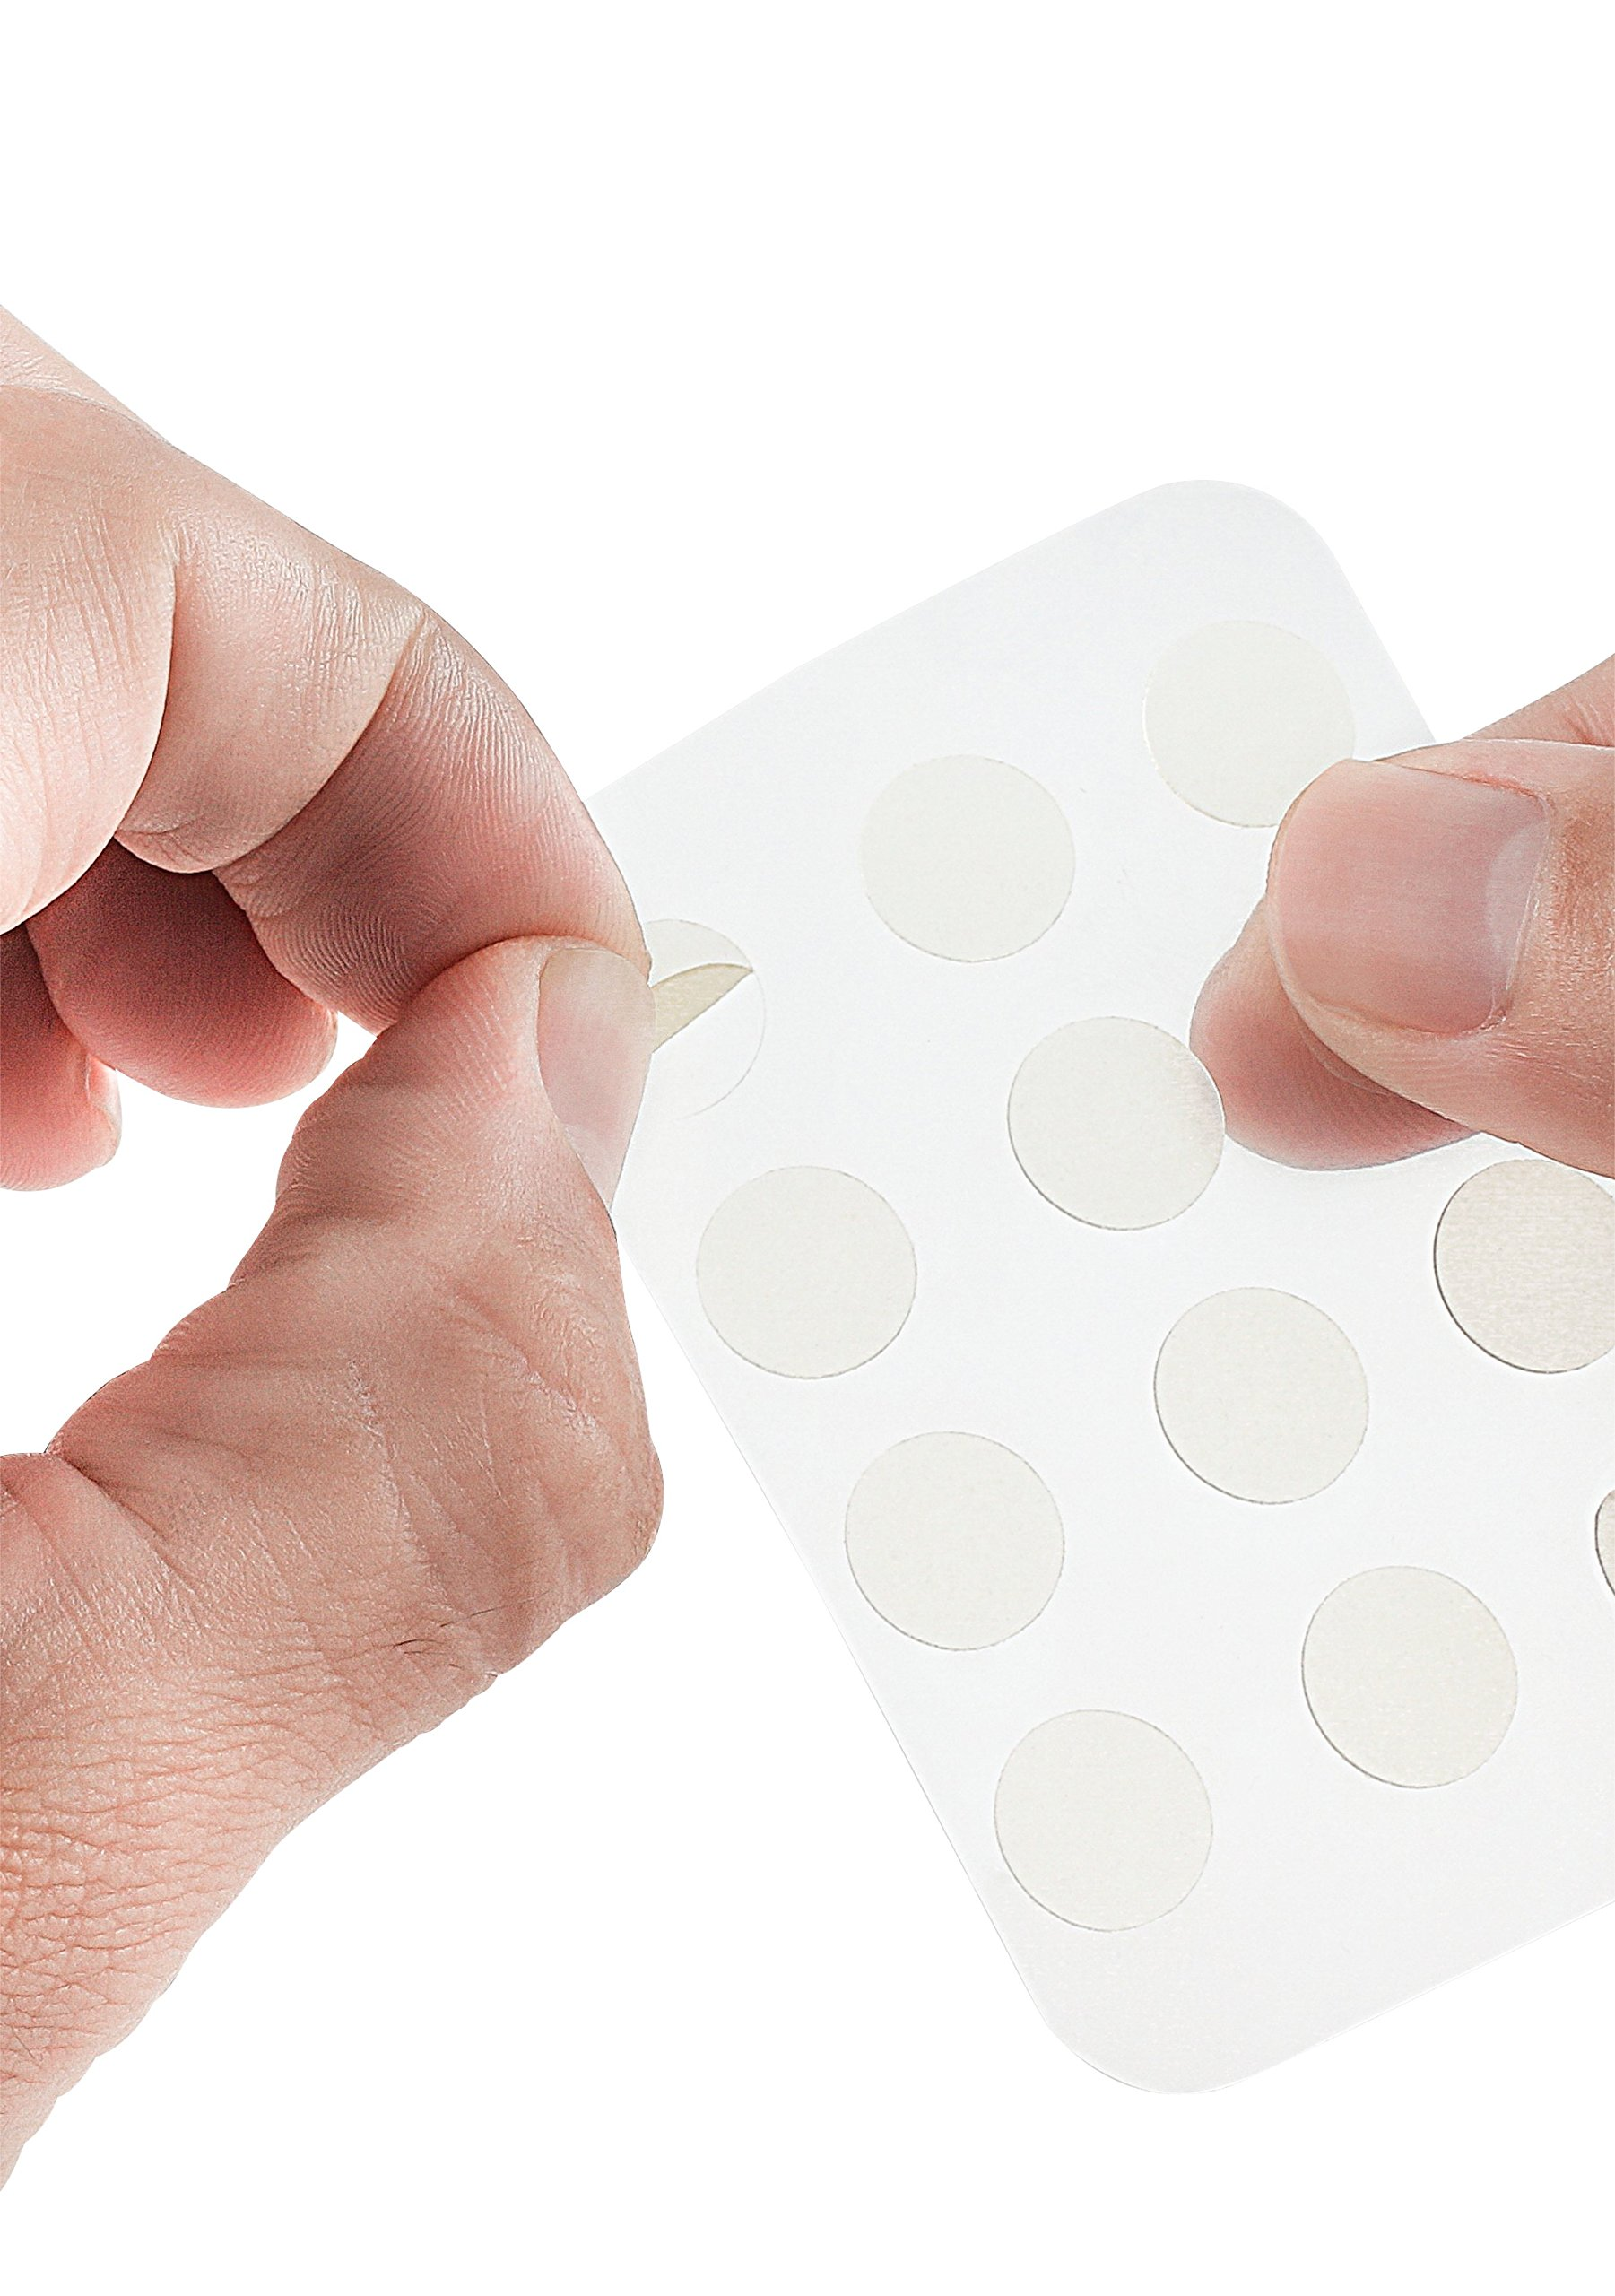 Mighty Patch Hydrocolloid Acne Absorbing Spot Dot (12mm 36 count) by Mighty Patch (Image #5)